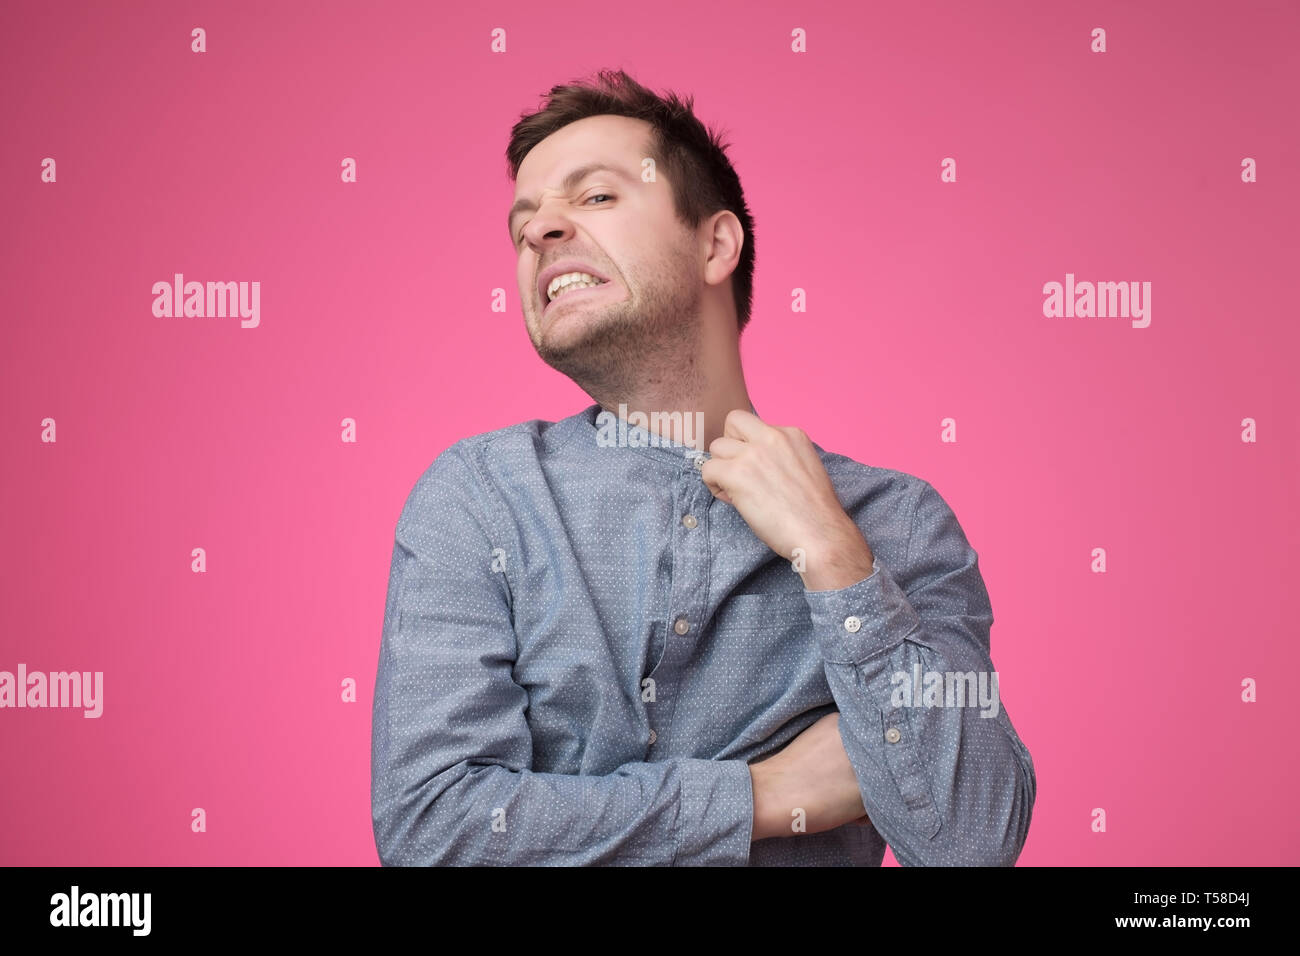 Frowning young businessman choking trying to put off his shirt. - Stock Image